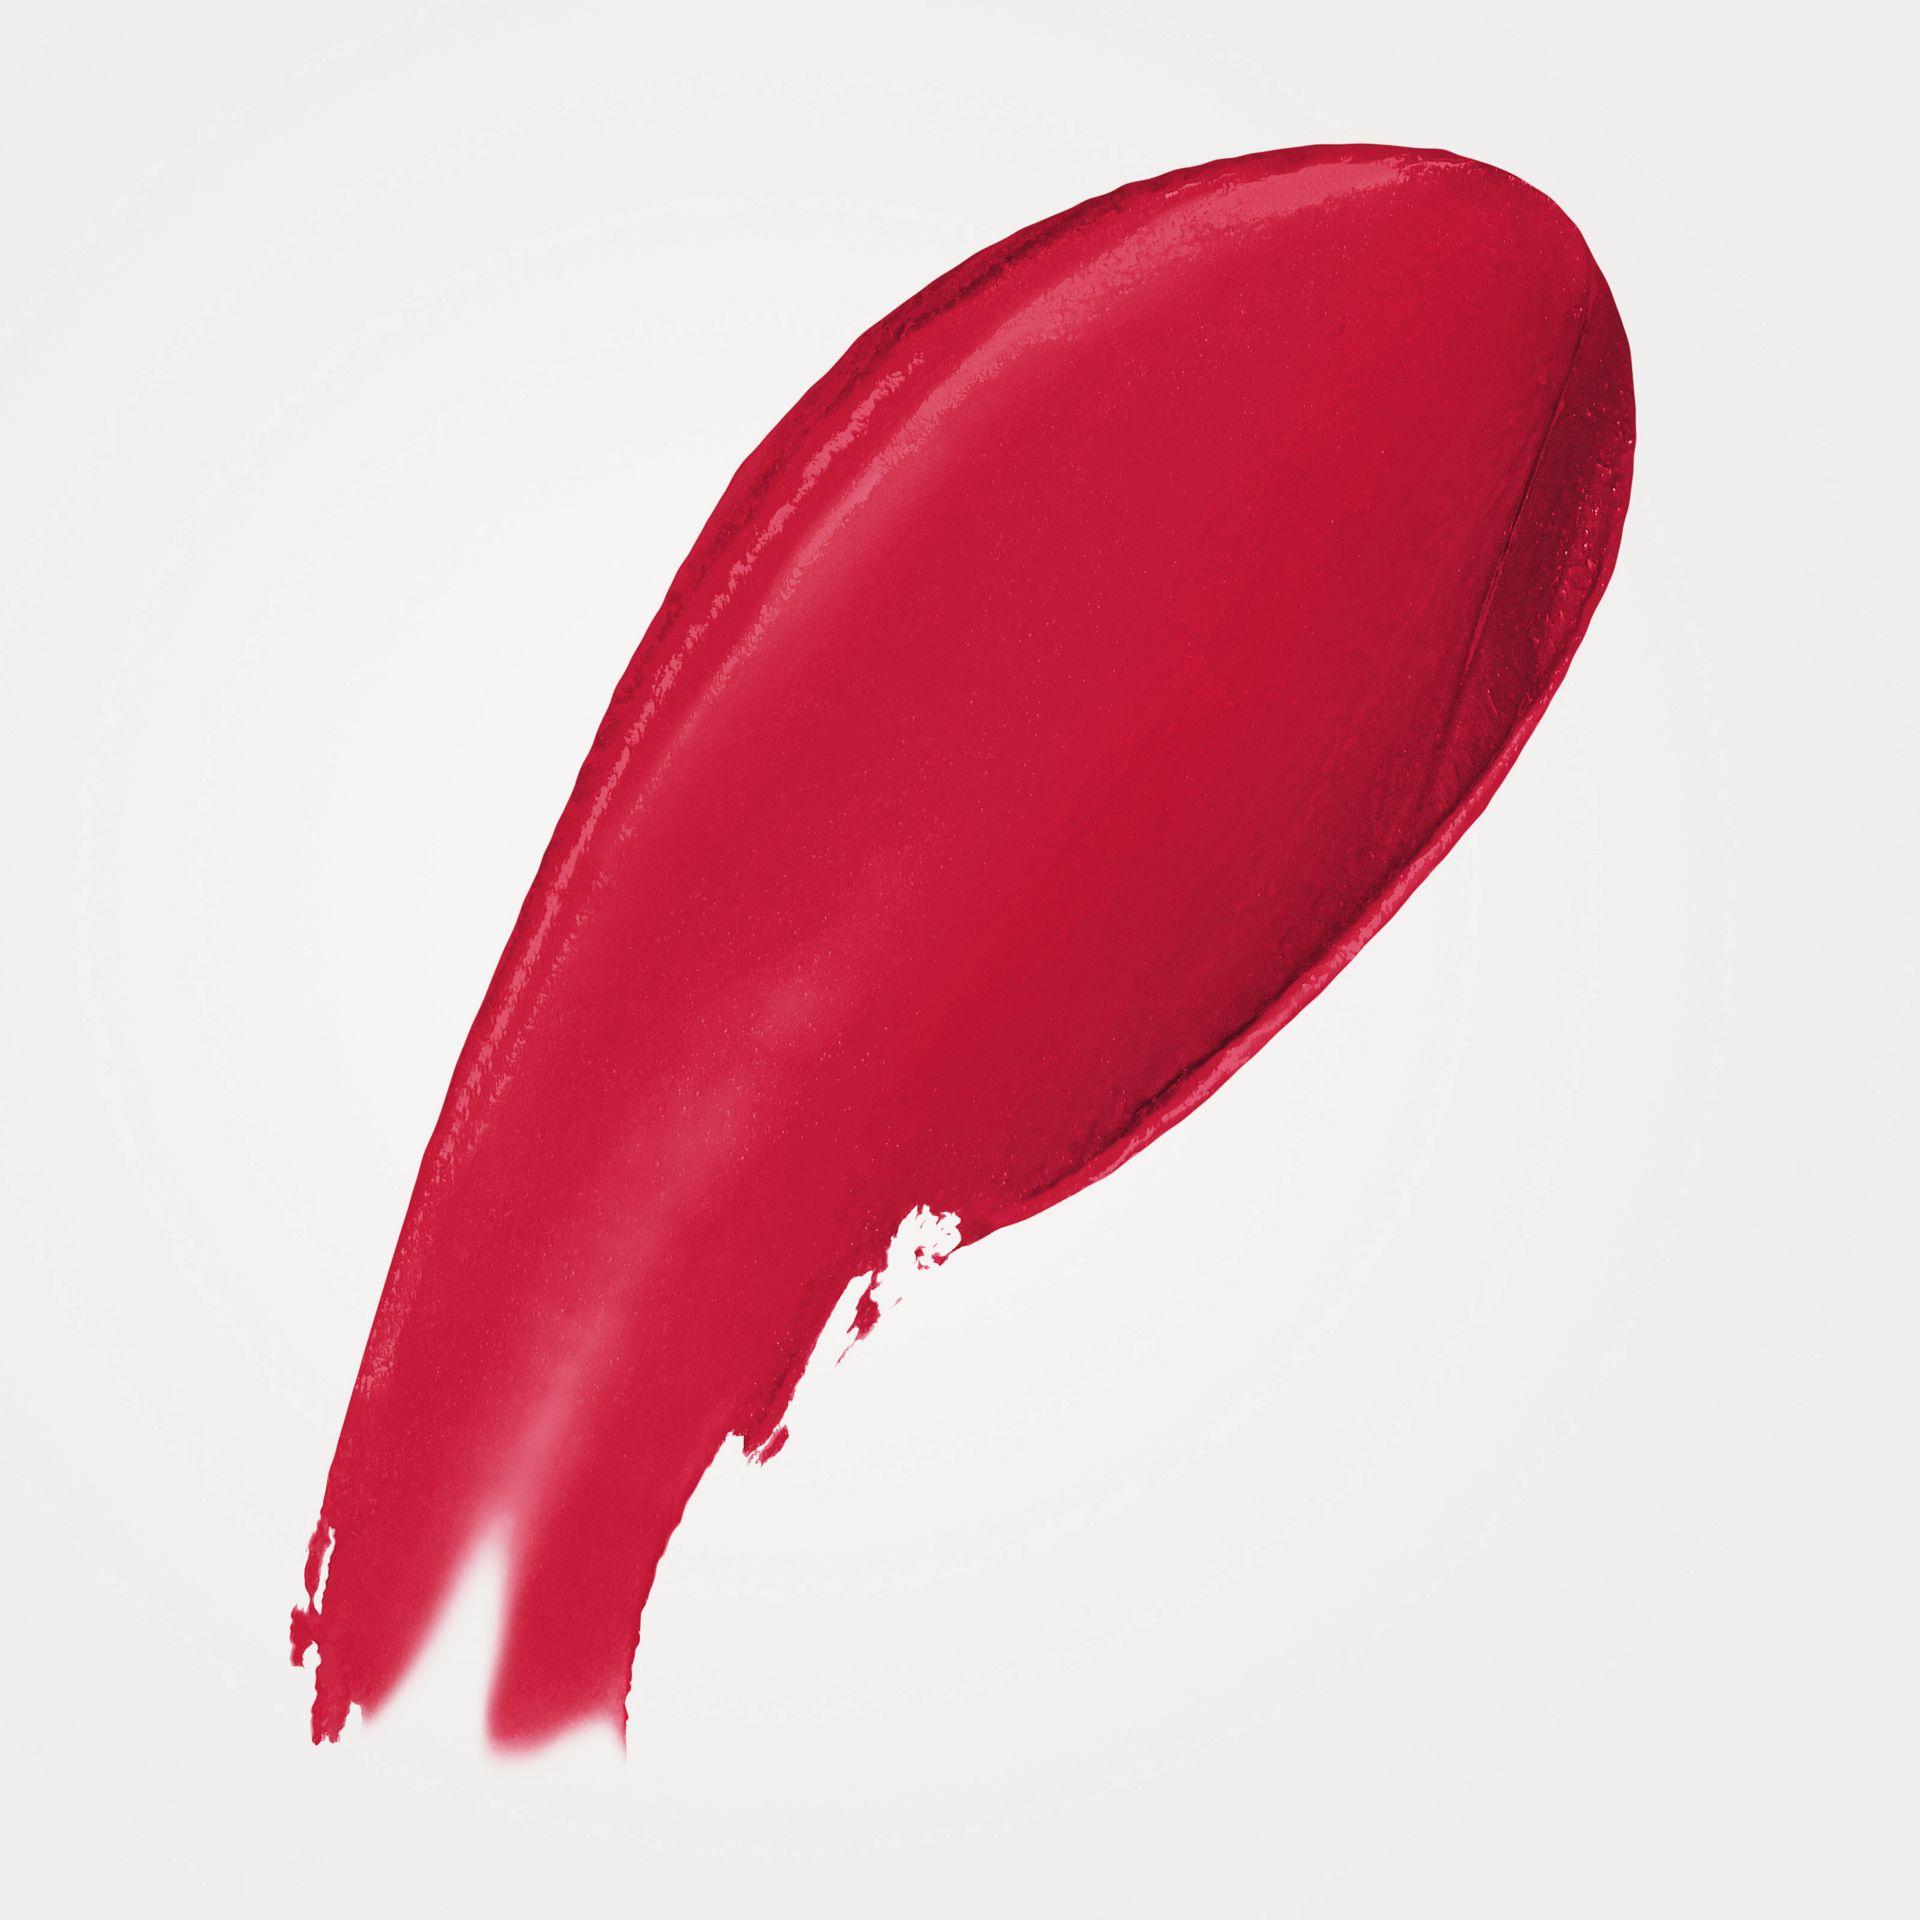 Poppy red 433 Lip Velvet Poppy Red No.433 - photo de la galerie 2